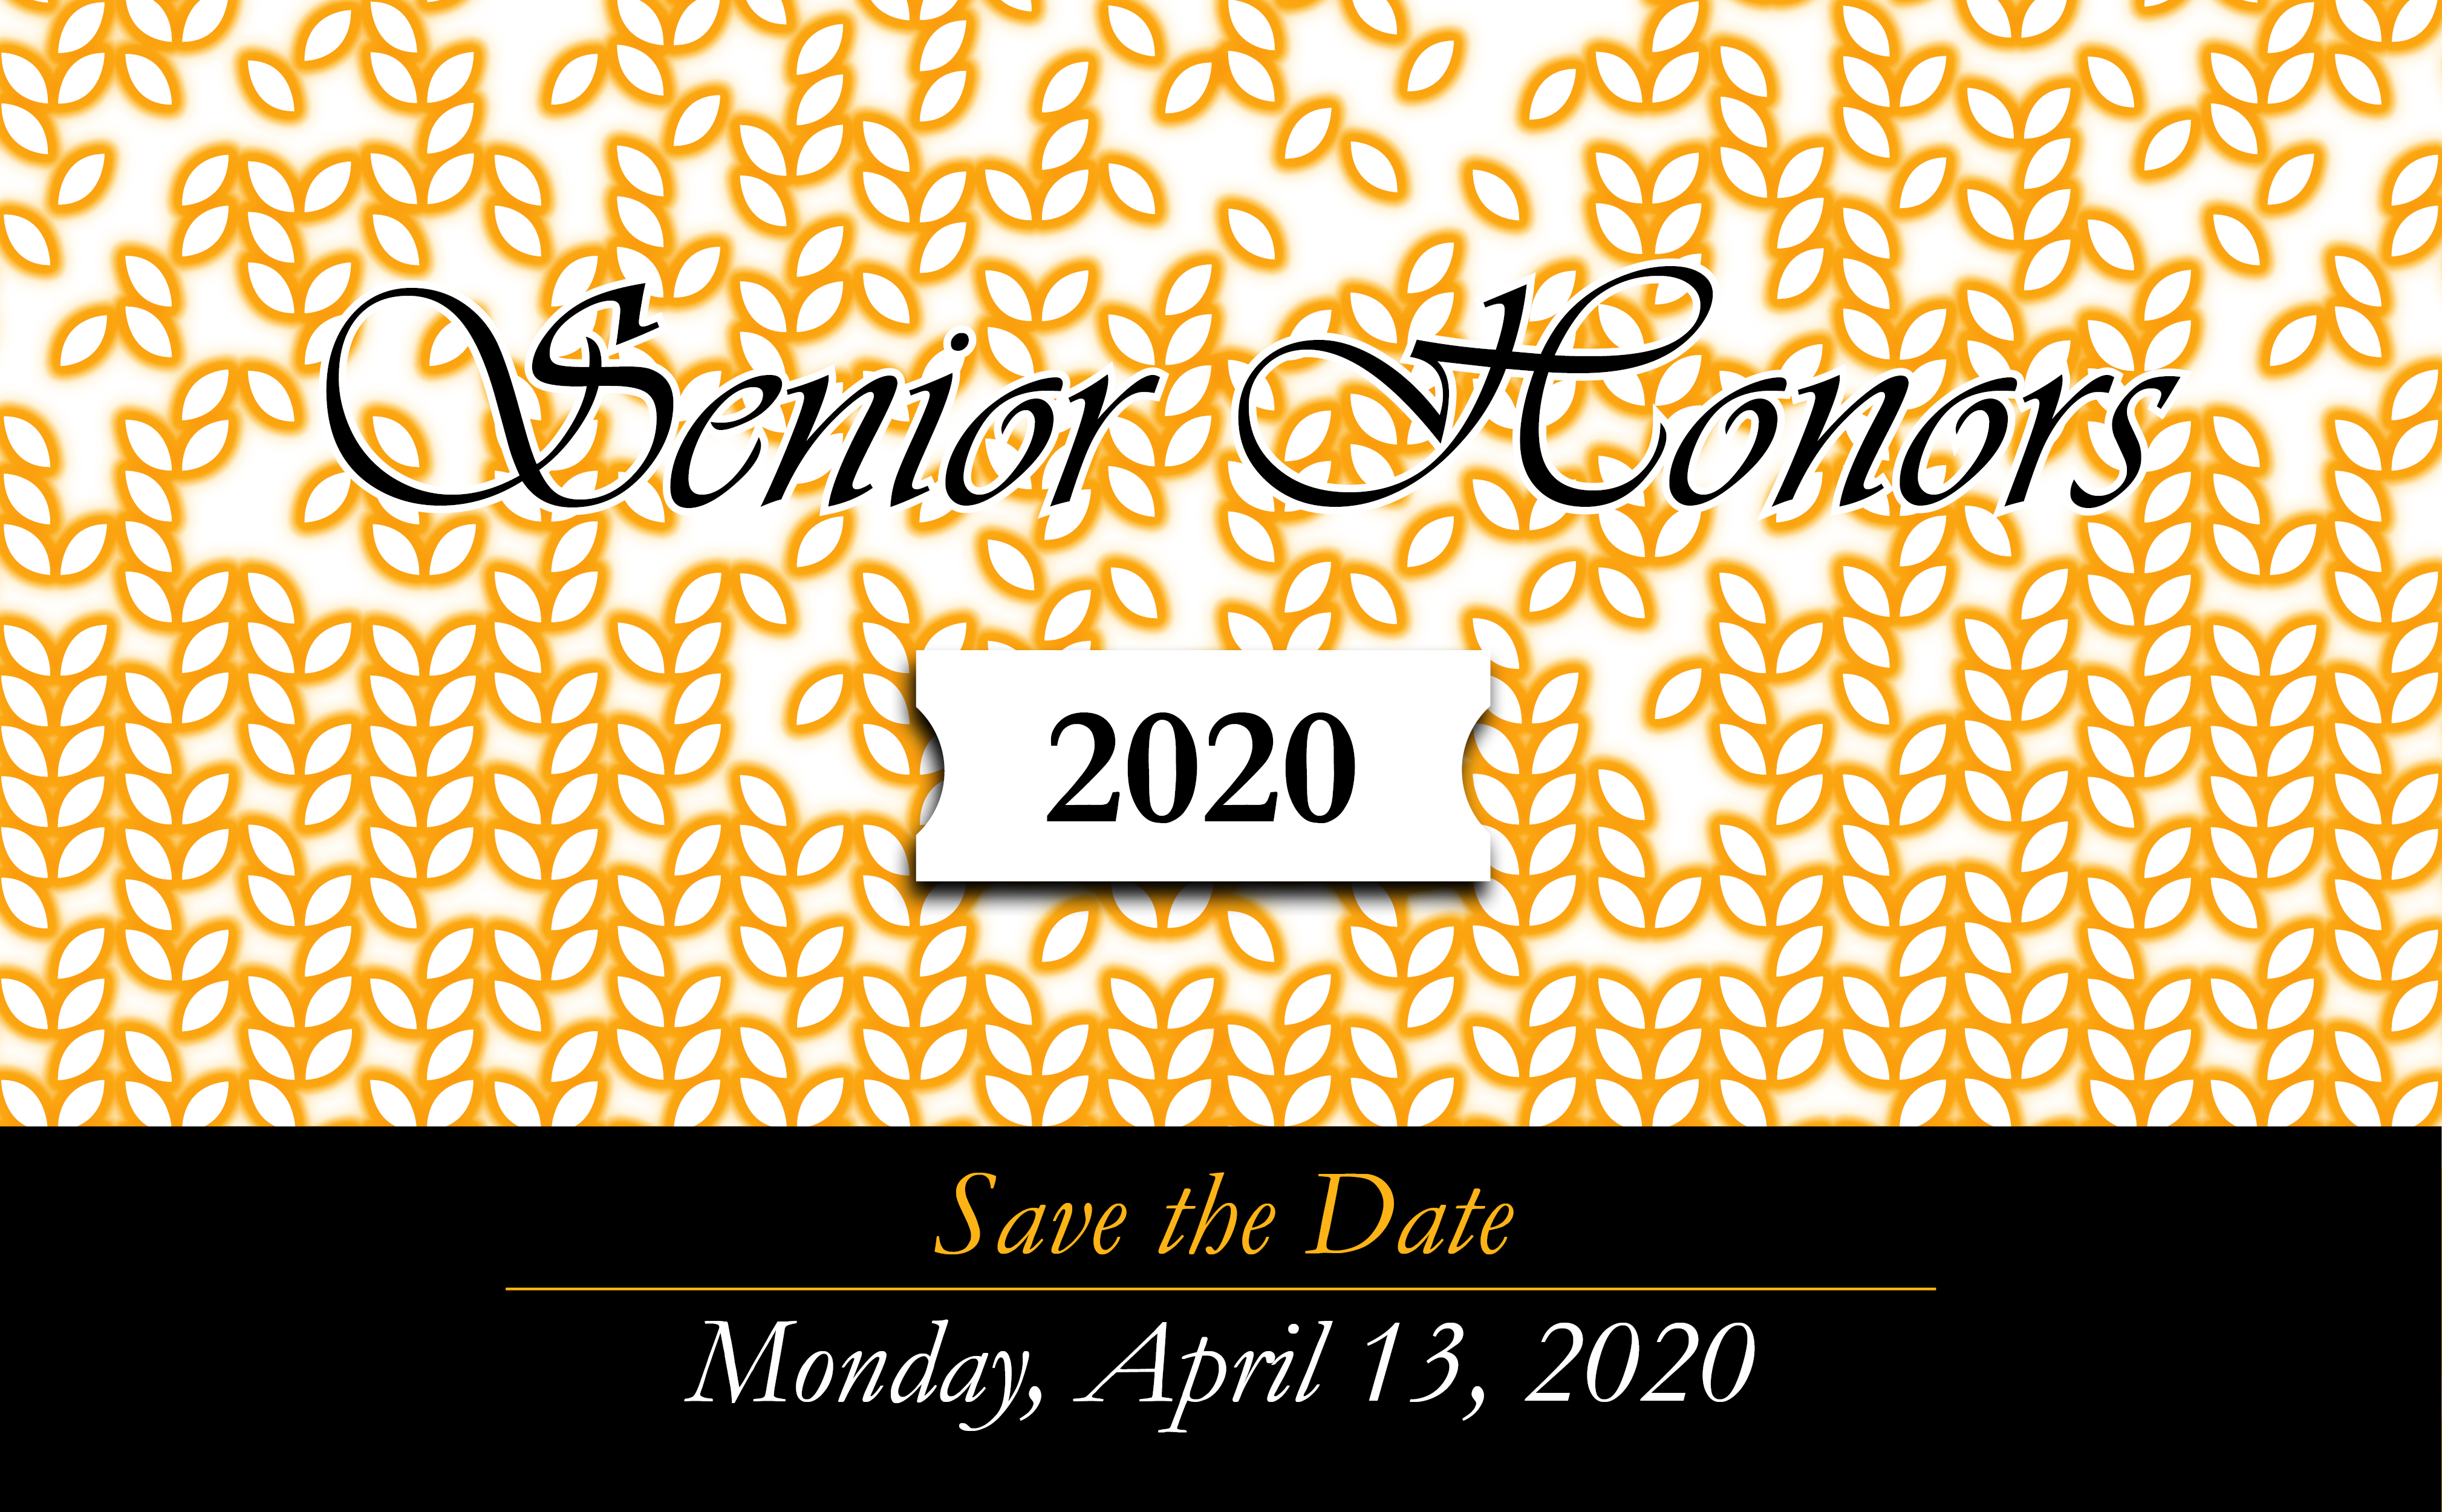 Senior Honors 2020 - Save the Date